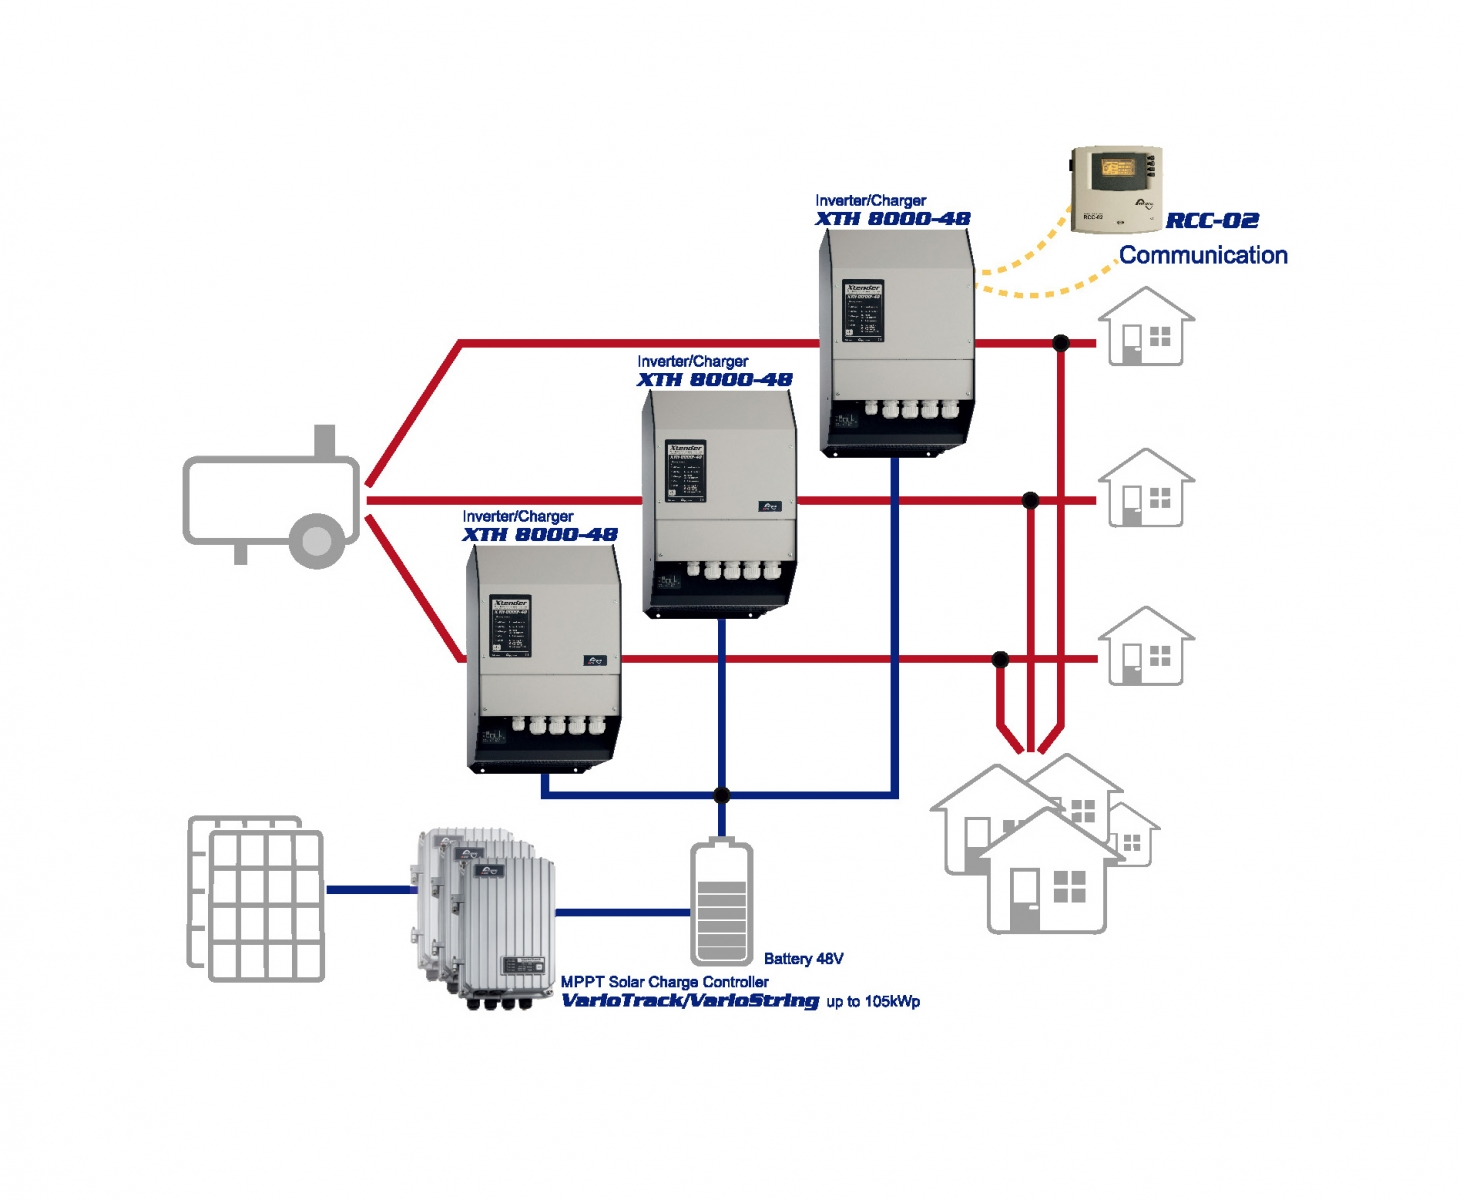 Single Line Diagram For House Wiring also Xtender Series as well Max Current 16A International 3 Phase 60158008839 likewise Generator Synchronization furthermore 32q29n. on single phase generator wiring diagram